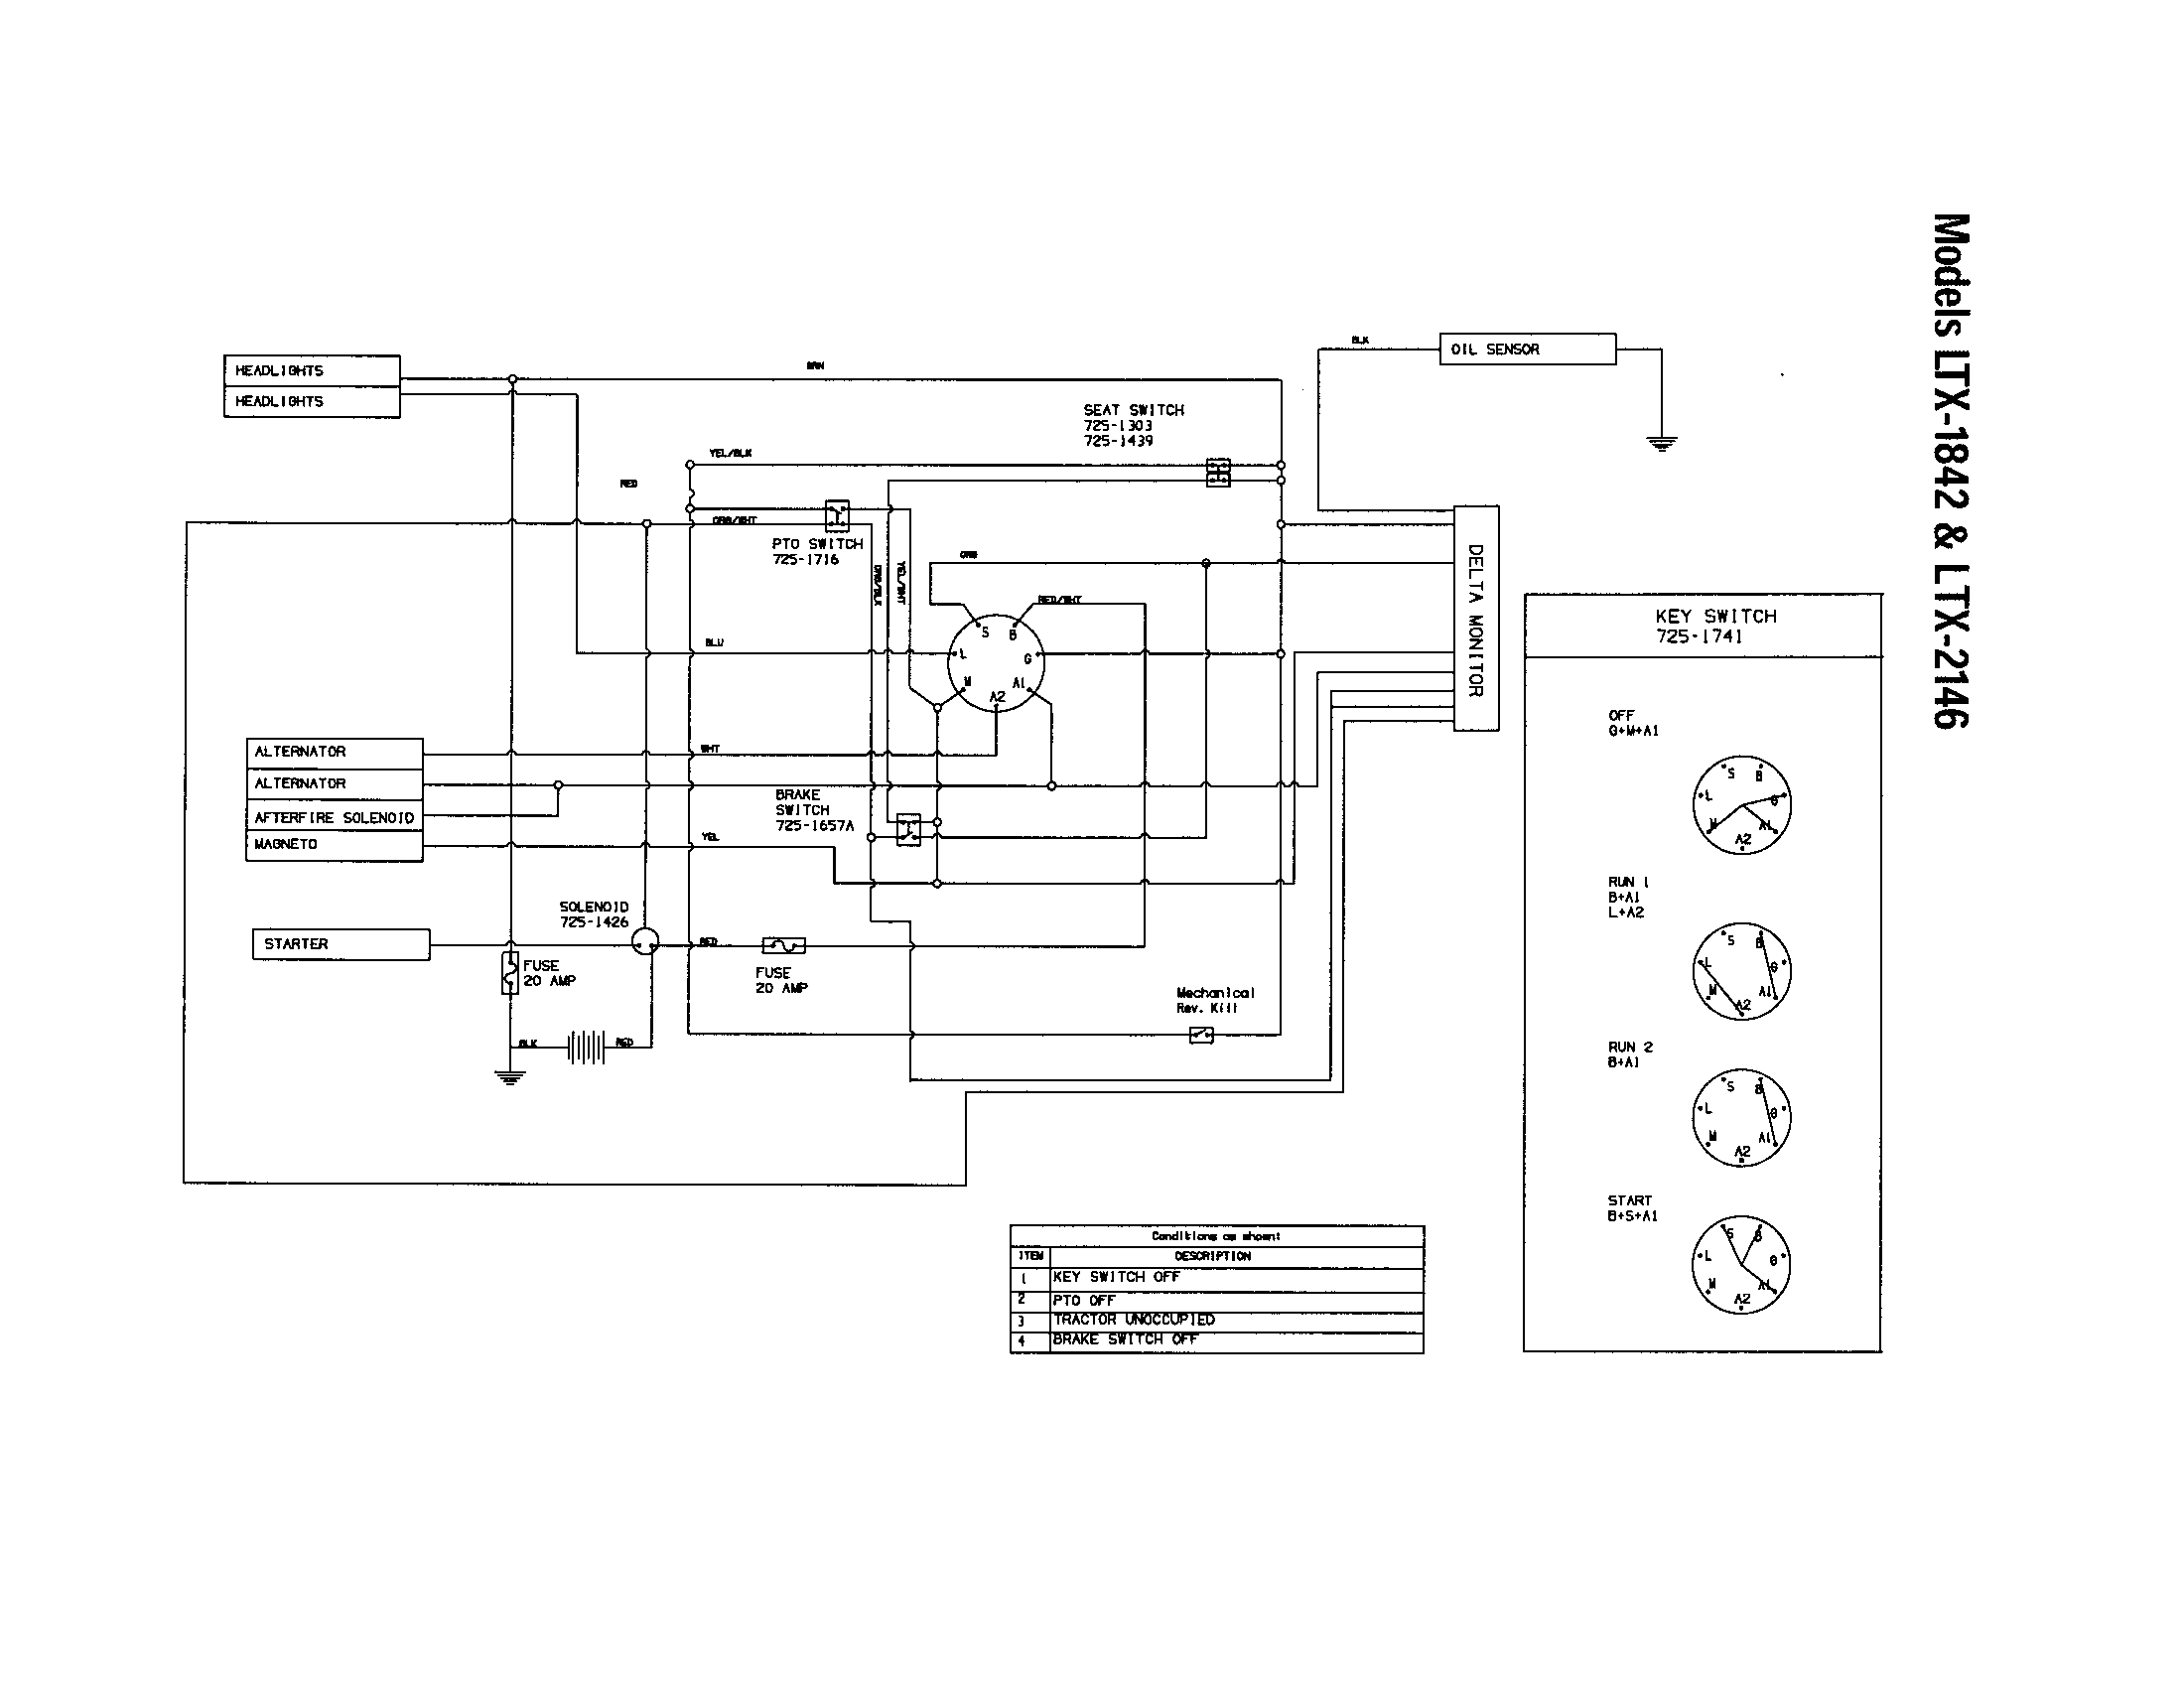 5f6fdf170ac50150de0653e8e97fb173 troy bilt mower wiring diagram on troy download wirning diagrams 17bf2acp011 wiring diagram at webbmarketing.co